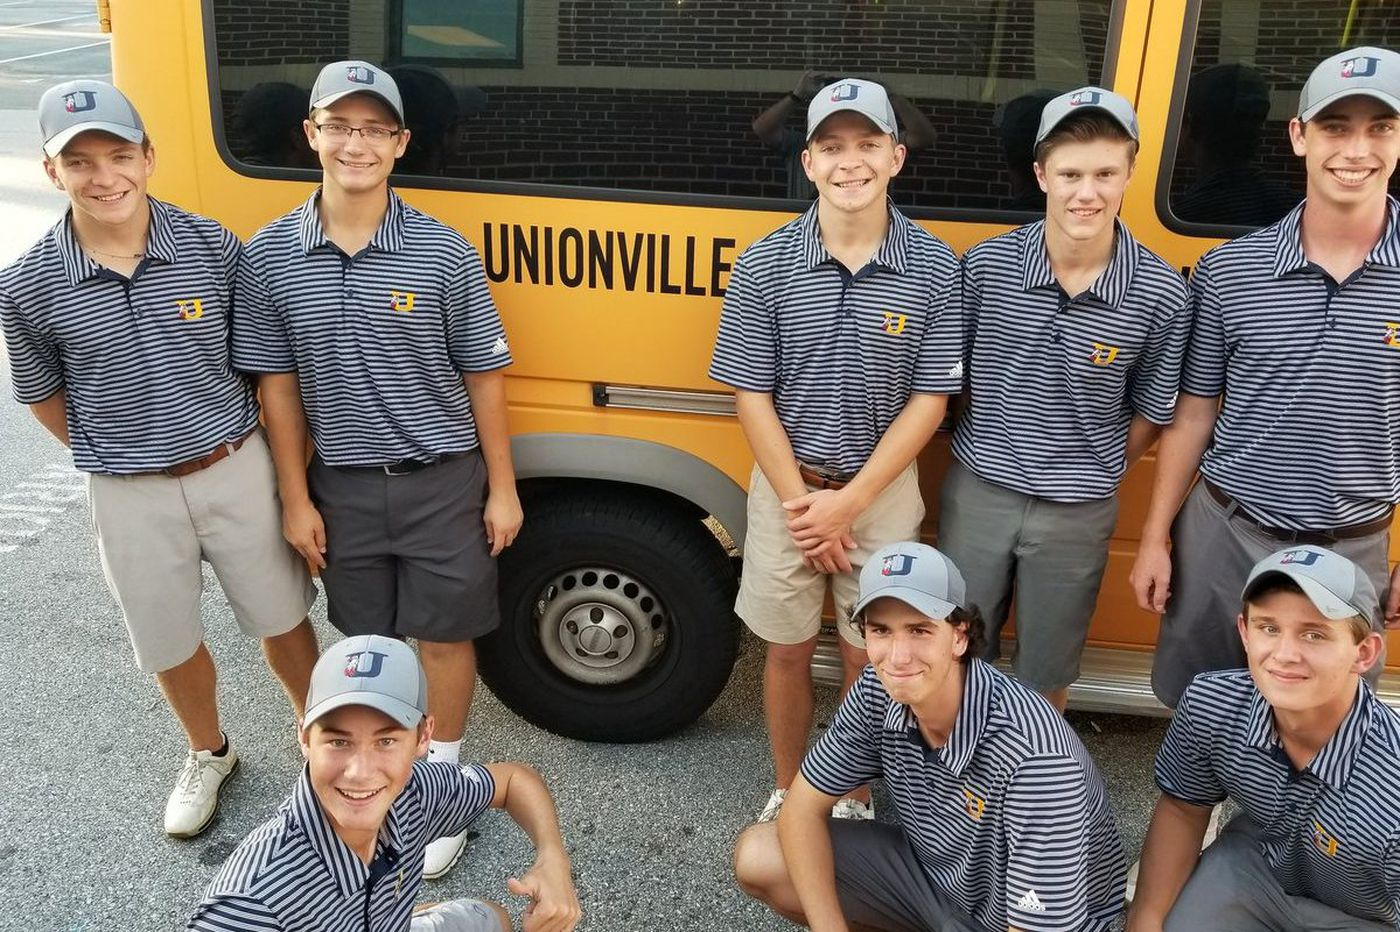 Tuesday's Southeastern Pa. roundup: Unionville boys' golf remains undefeated with win against Kennett